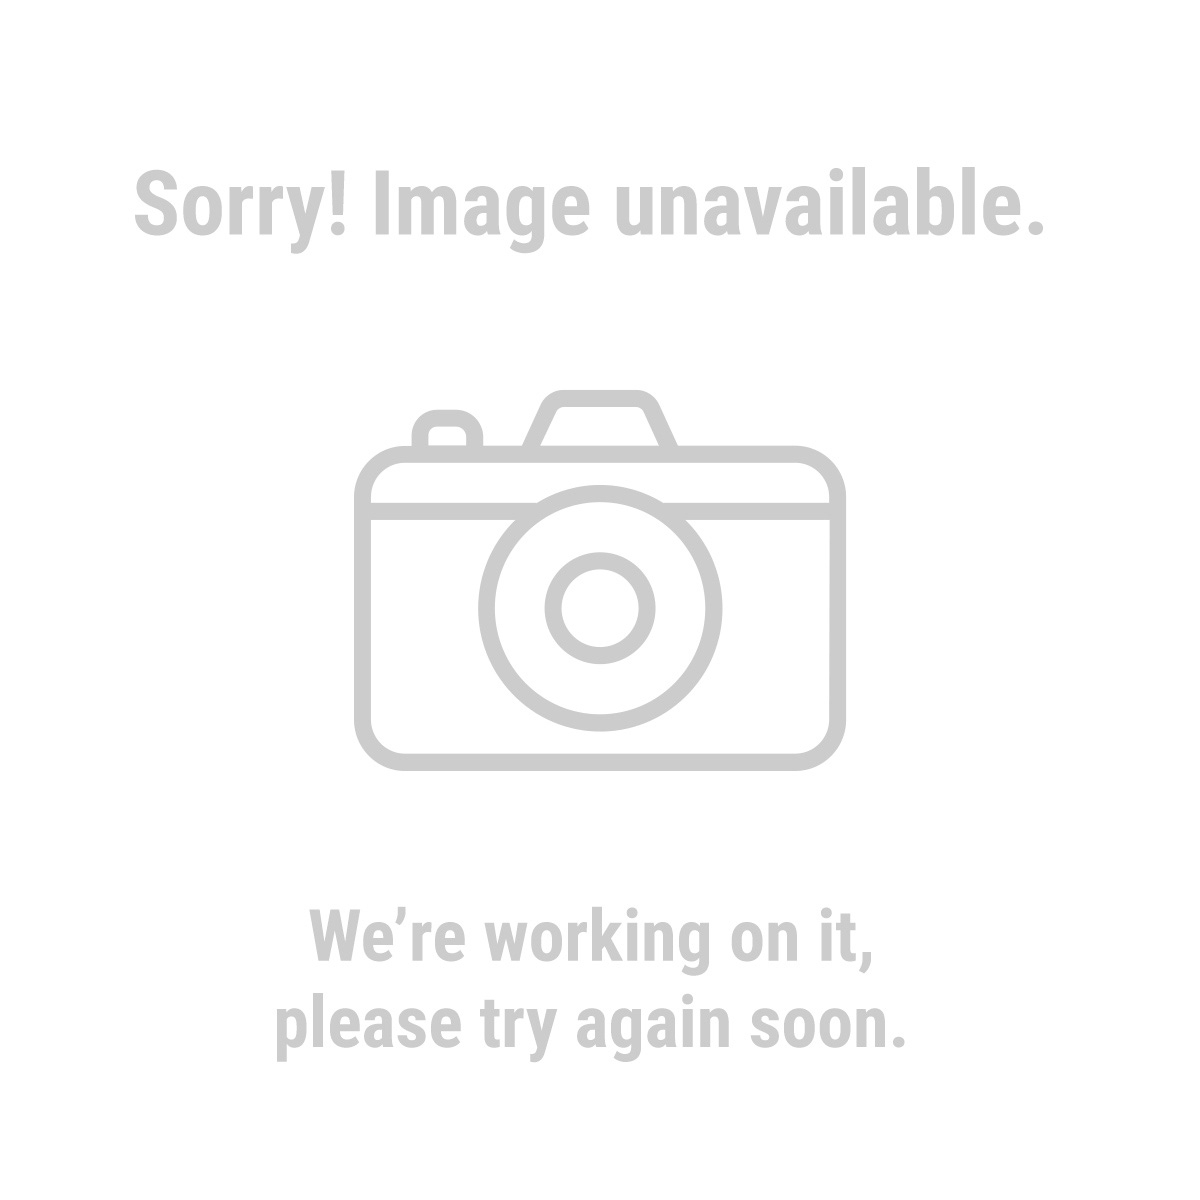 Western Safety 62713 Split Leather Work Gloves With Knit Wrist